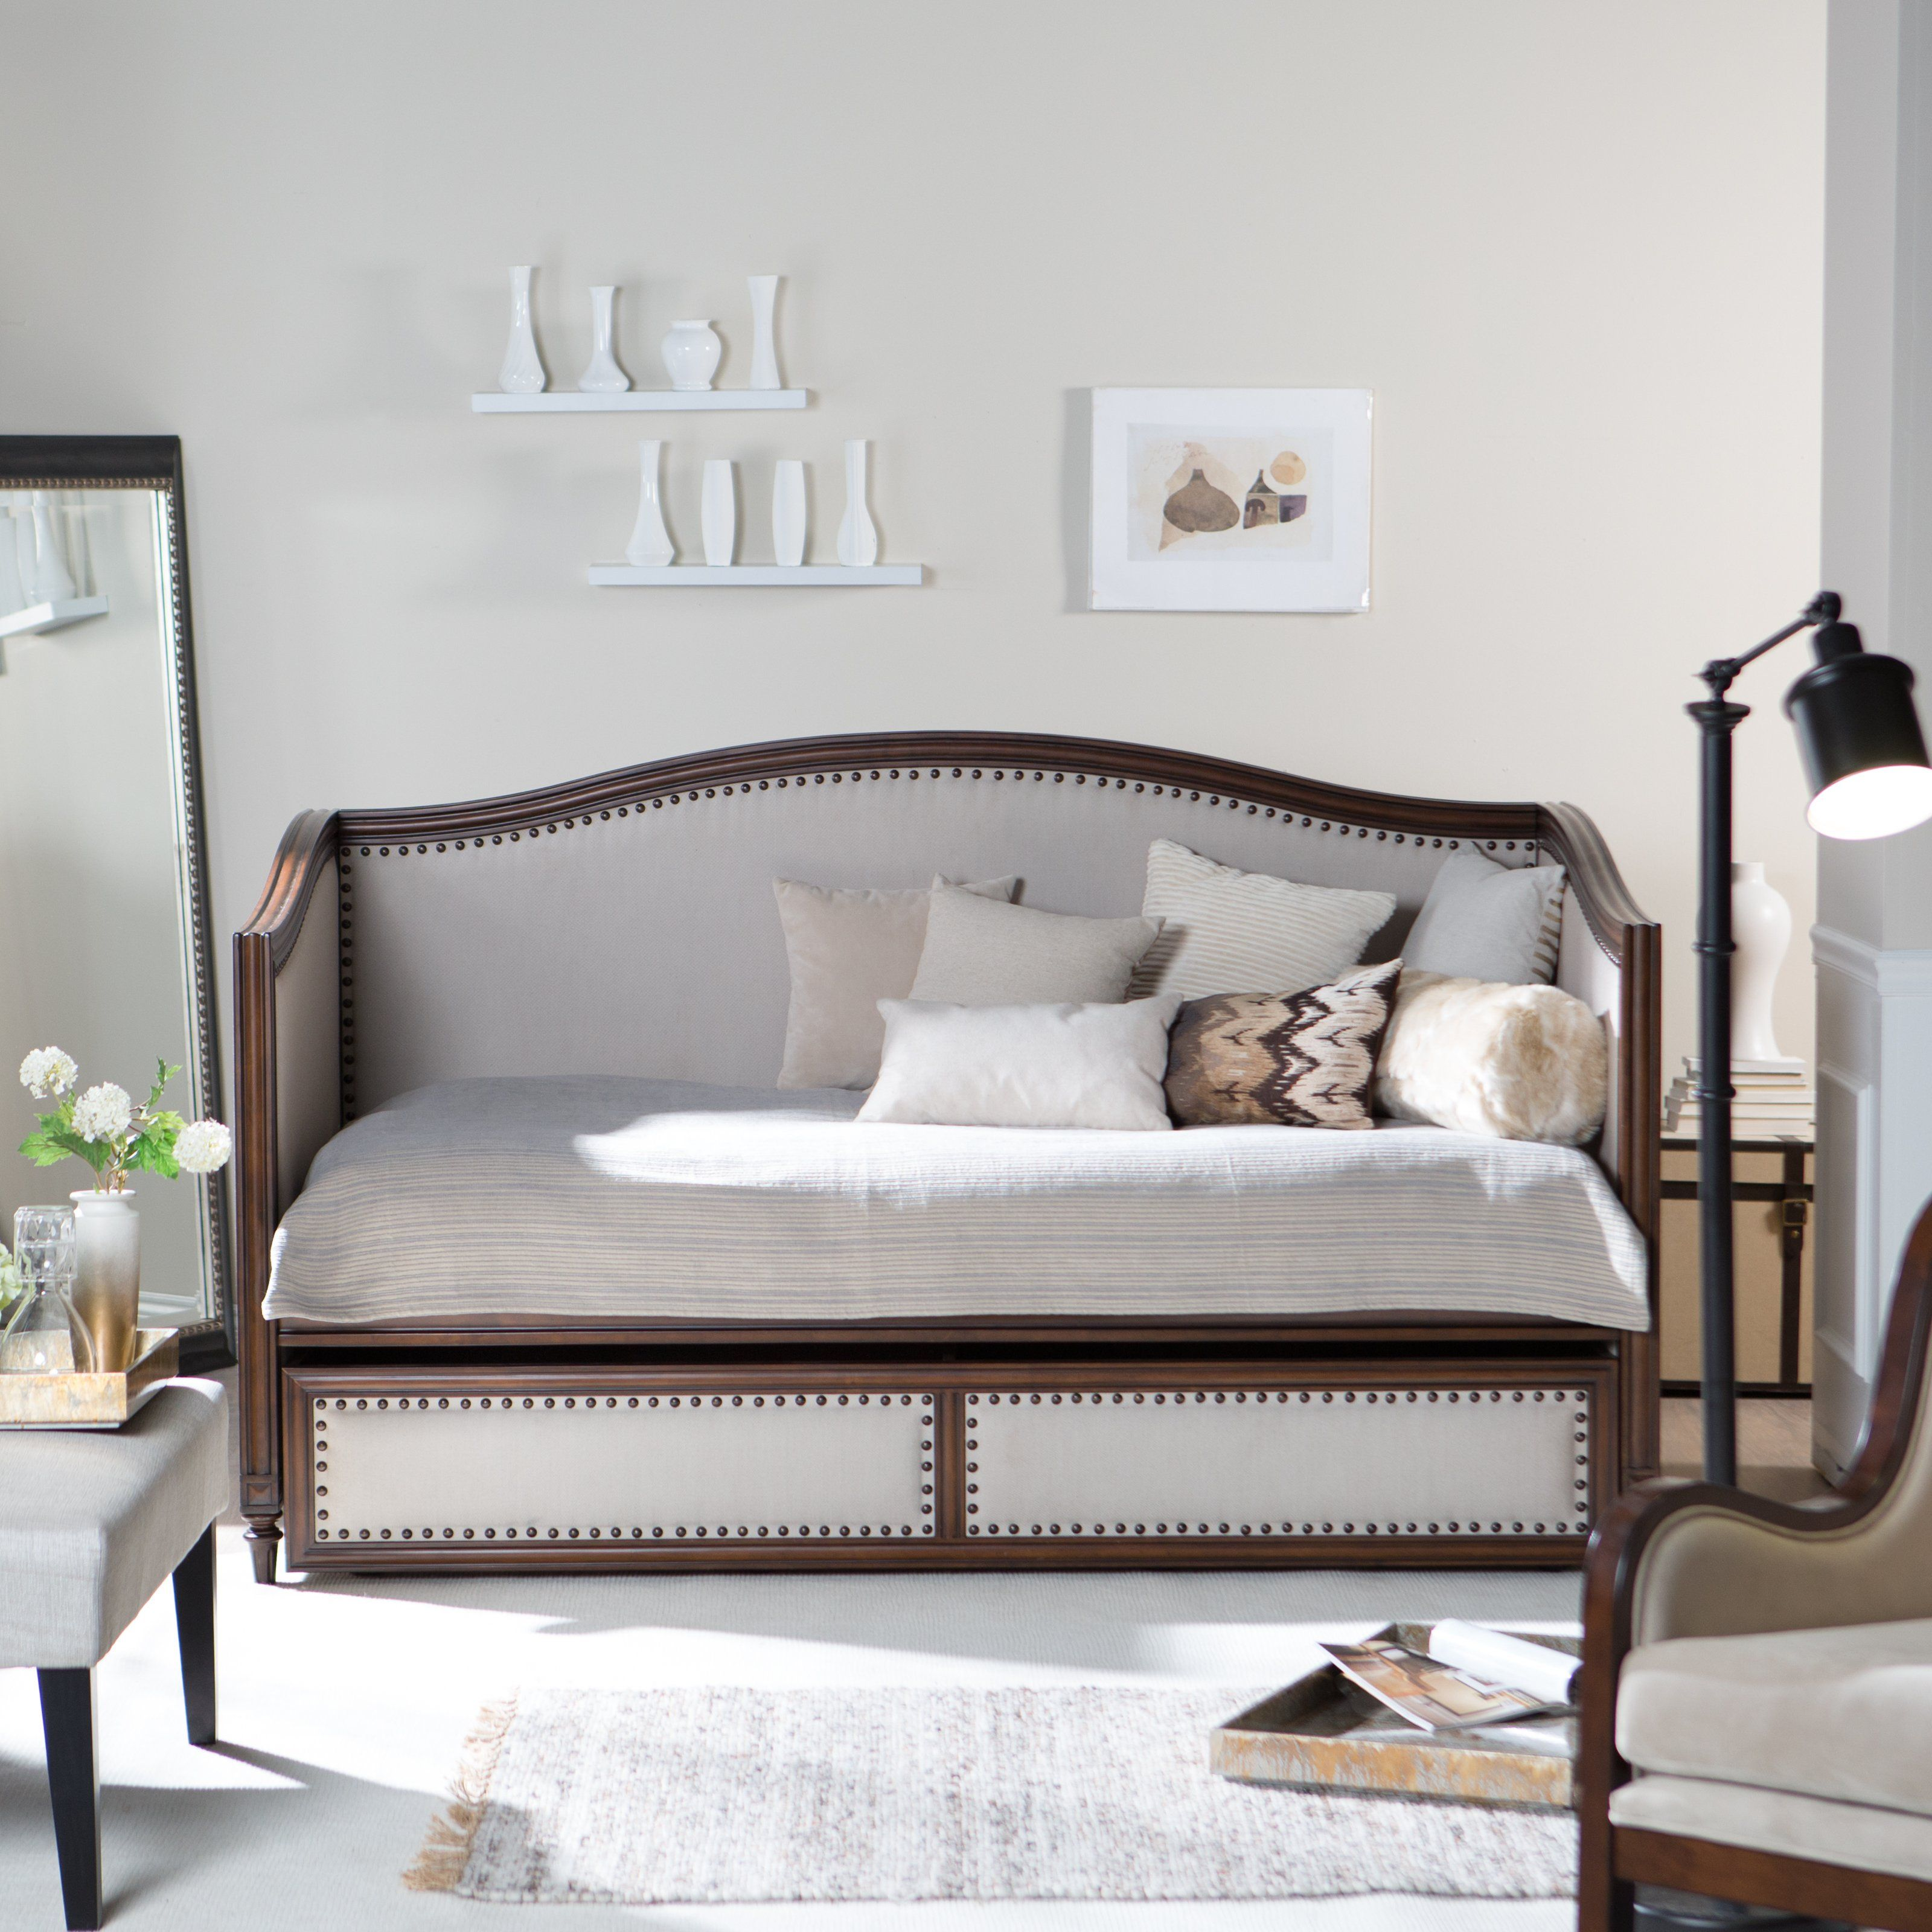 Shop, compare and enjoy the savings of the Belham Living Halstead  Upholstered Daybed on Hayneedle to the Restoration Hardware Mason Daybed.